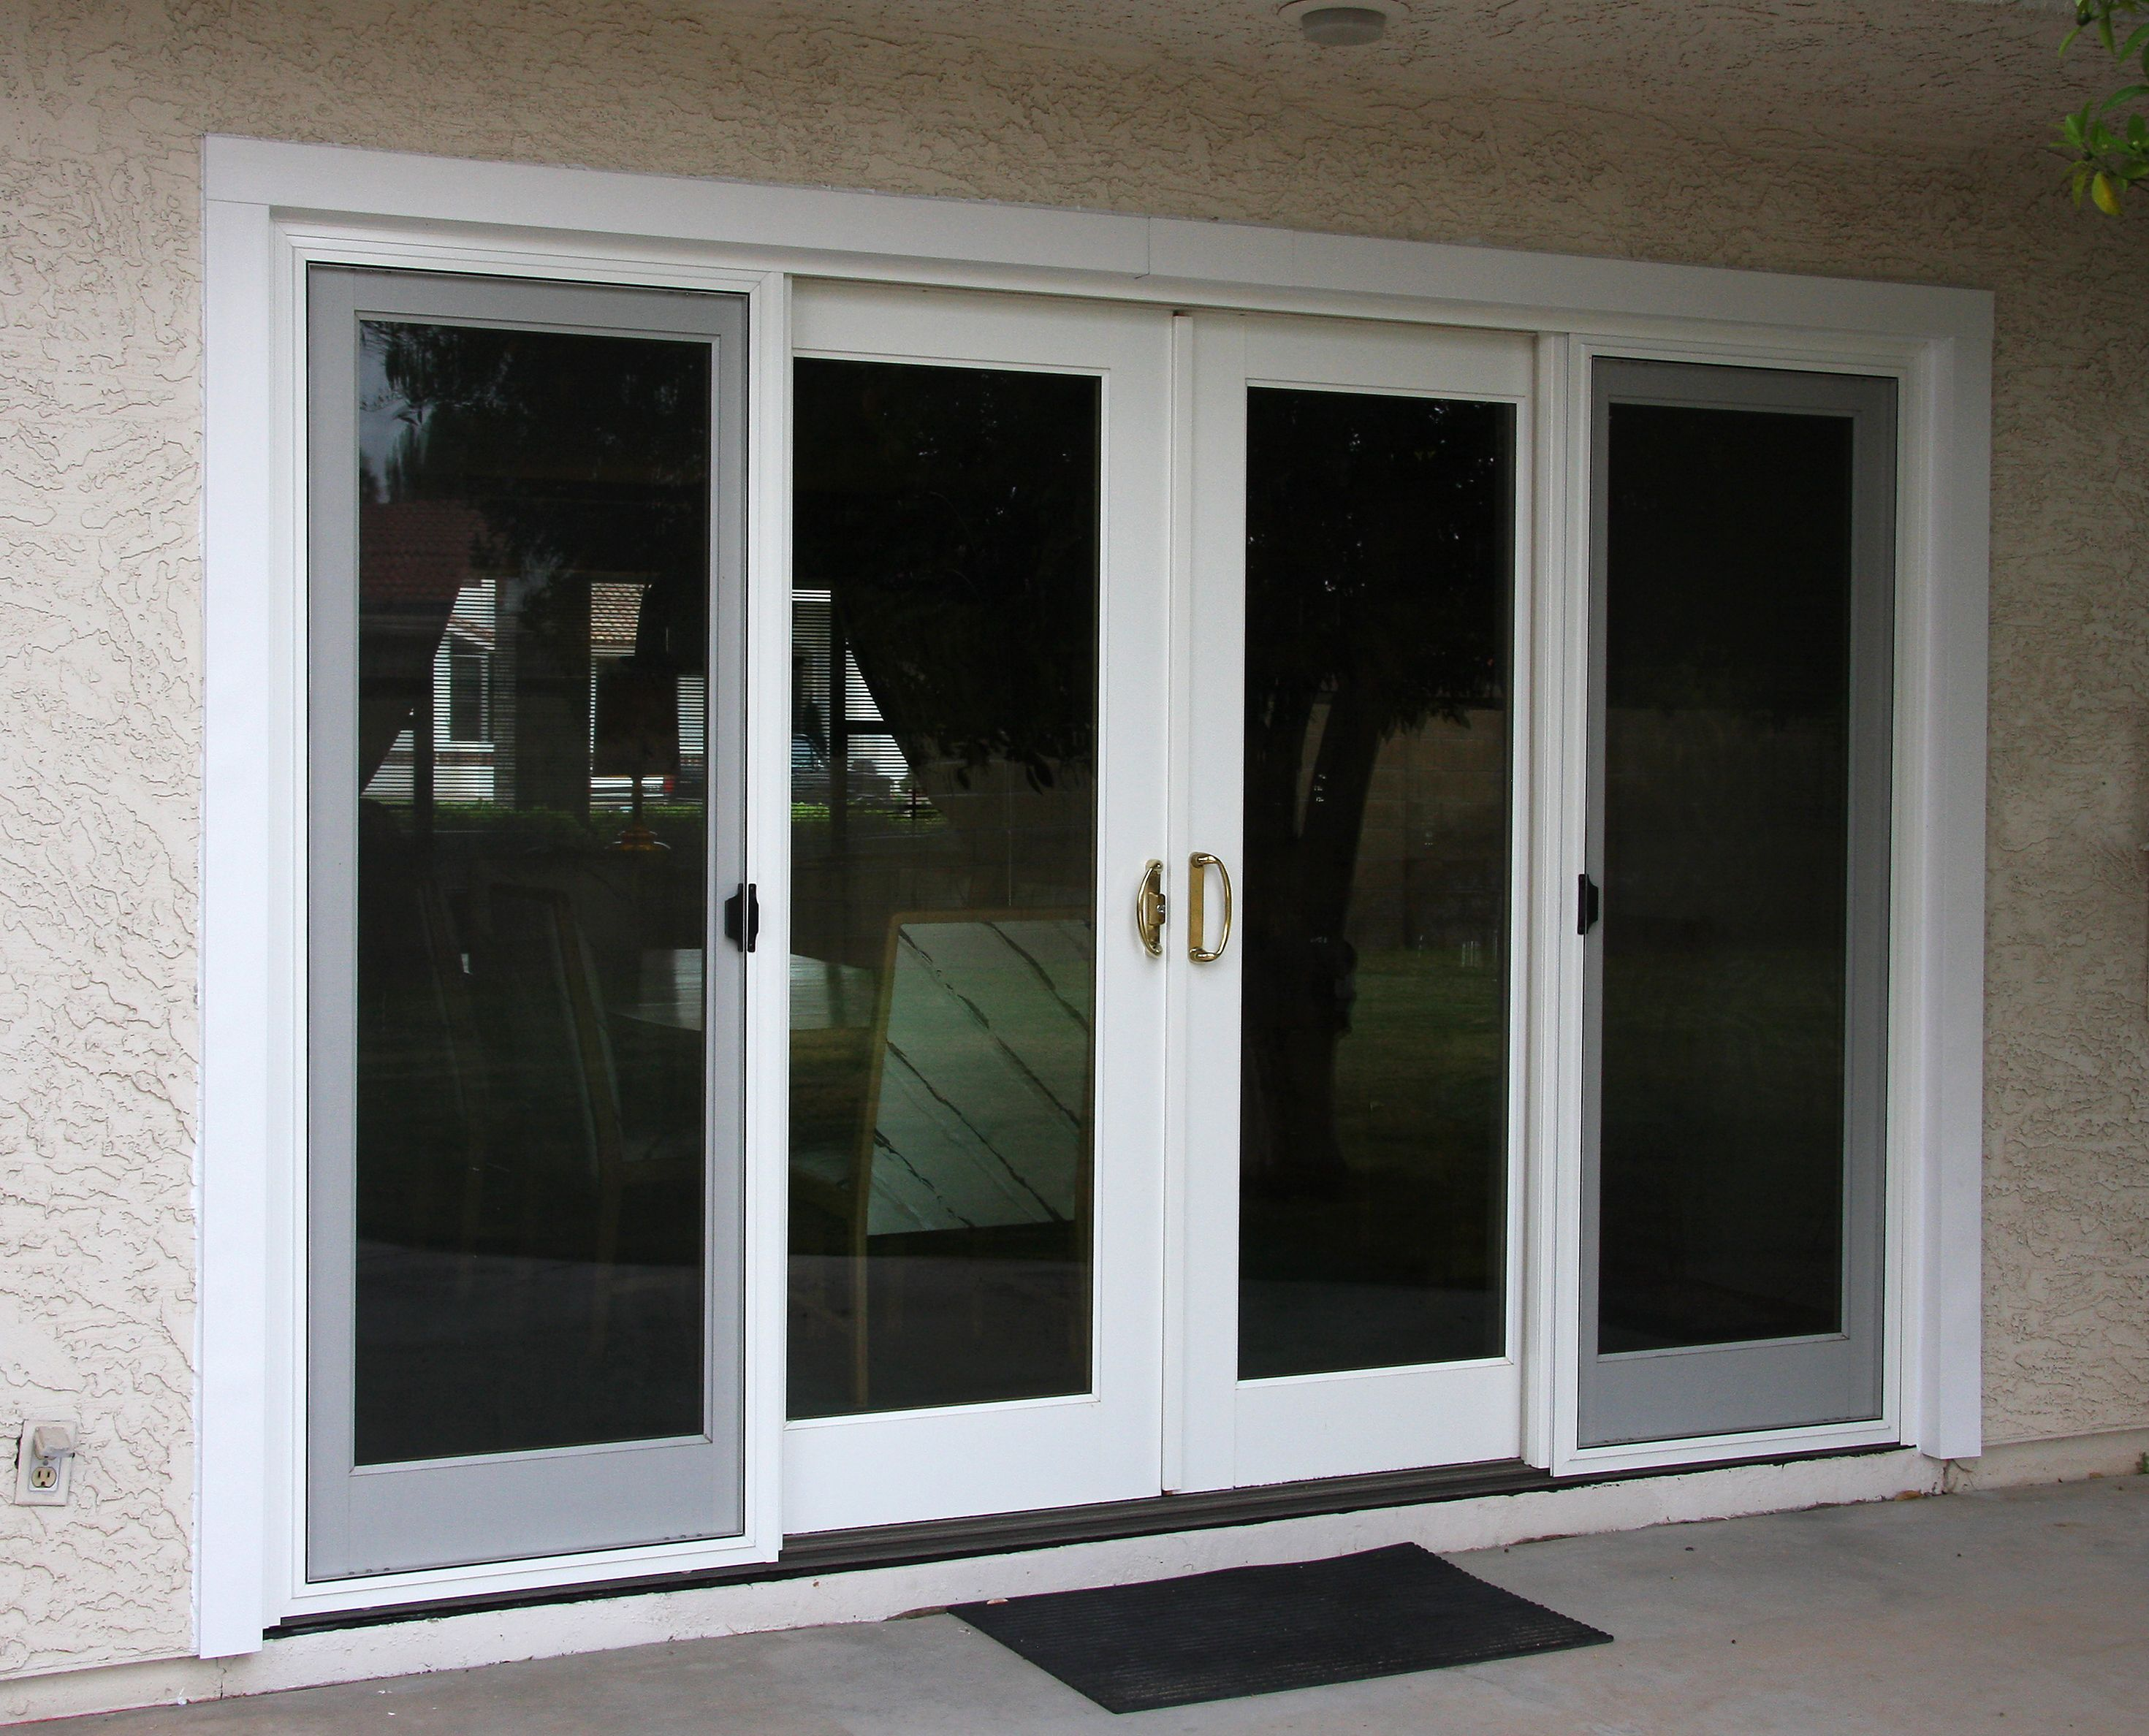 4 Panel Sliding Patio French Door In White So Beautiful Done By Krasiva Windows And Doors In Phoenix Arizo Sliding Glass Doors Patio Patio Doors French Doors